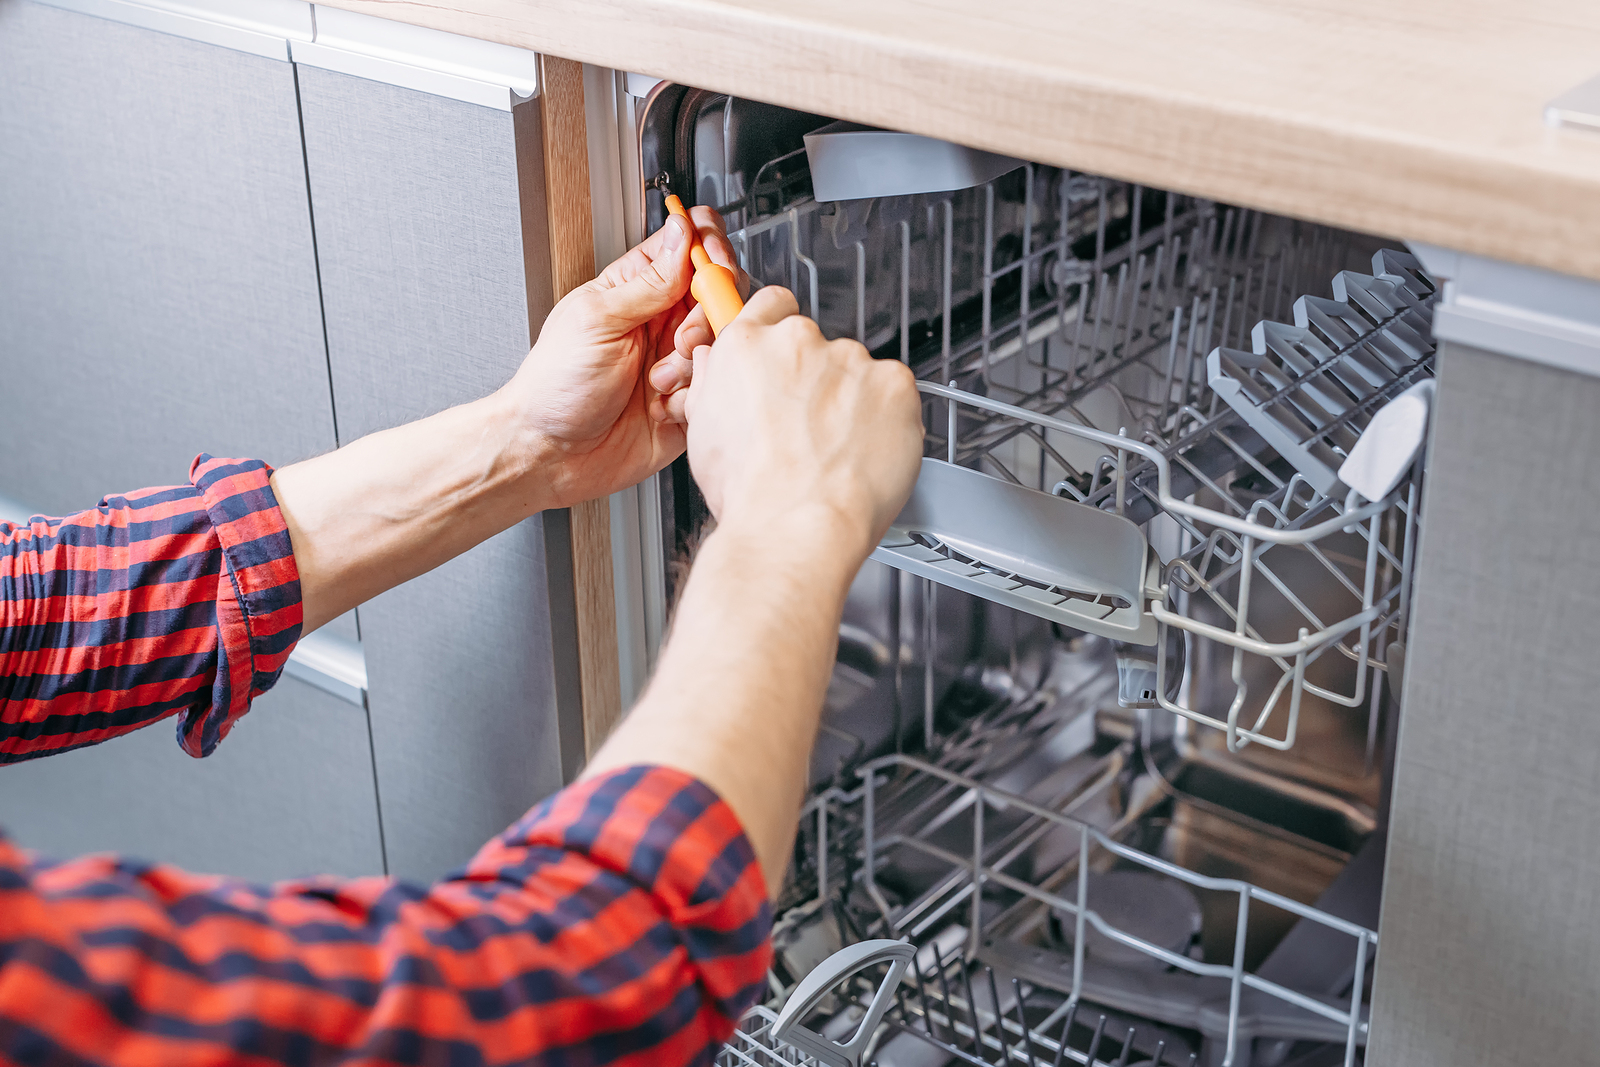 bigstock-Man-Repairing-Dishwasher-Male-257599267